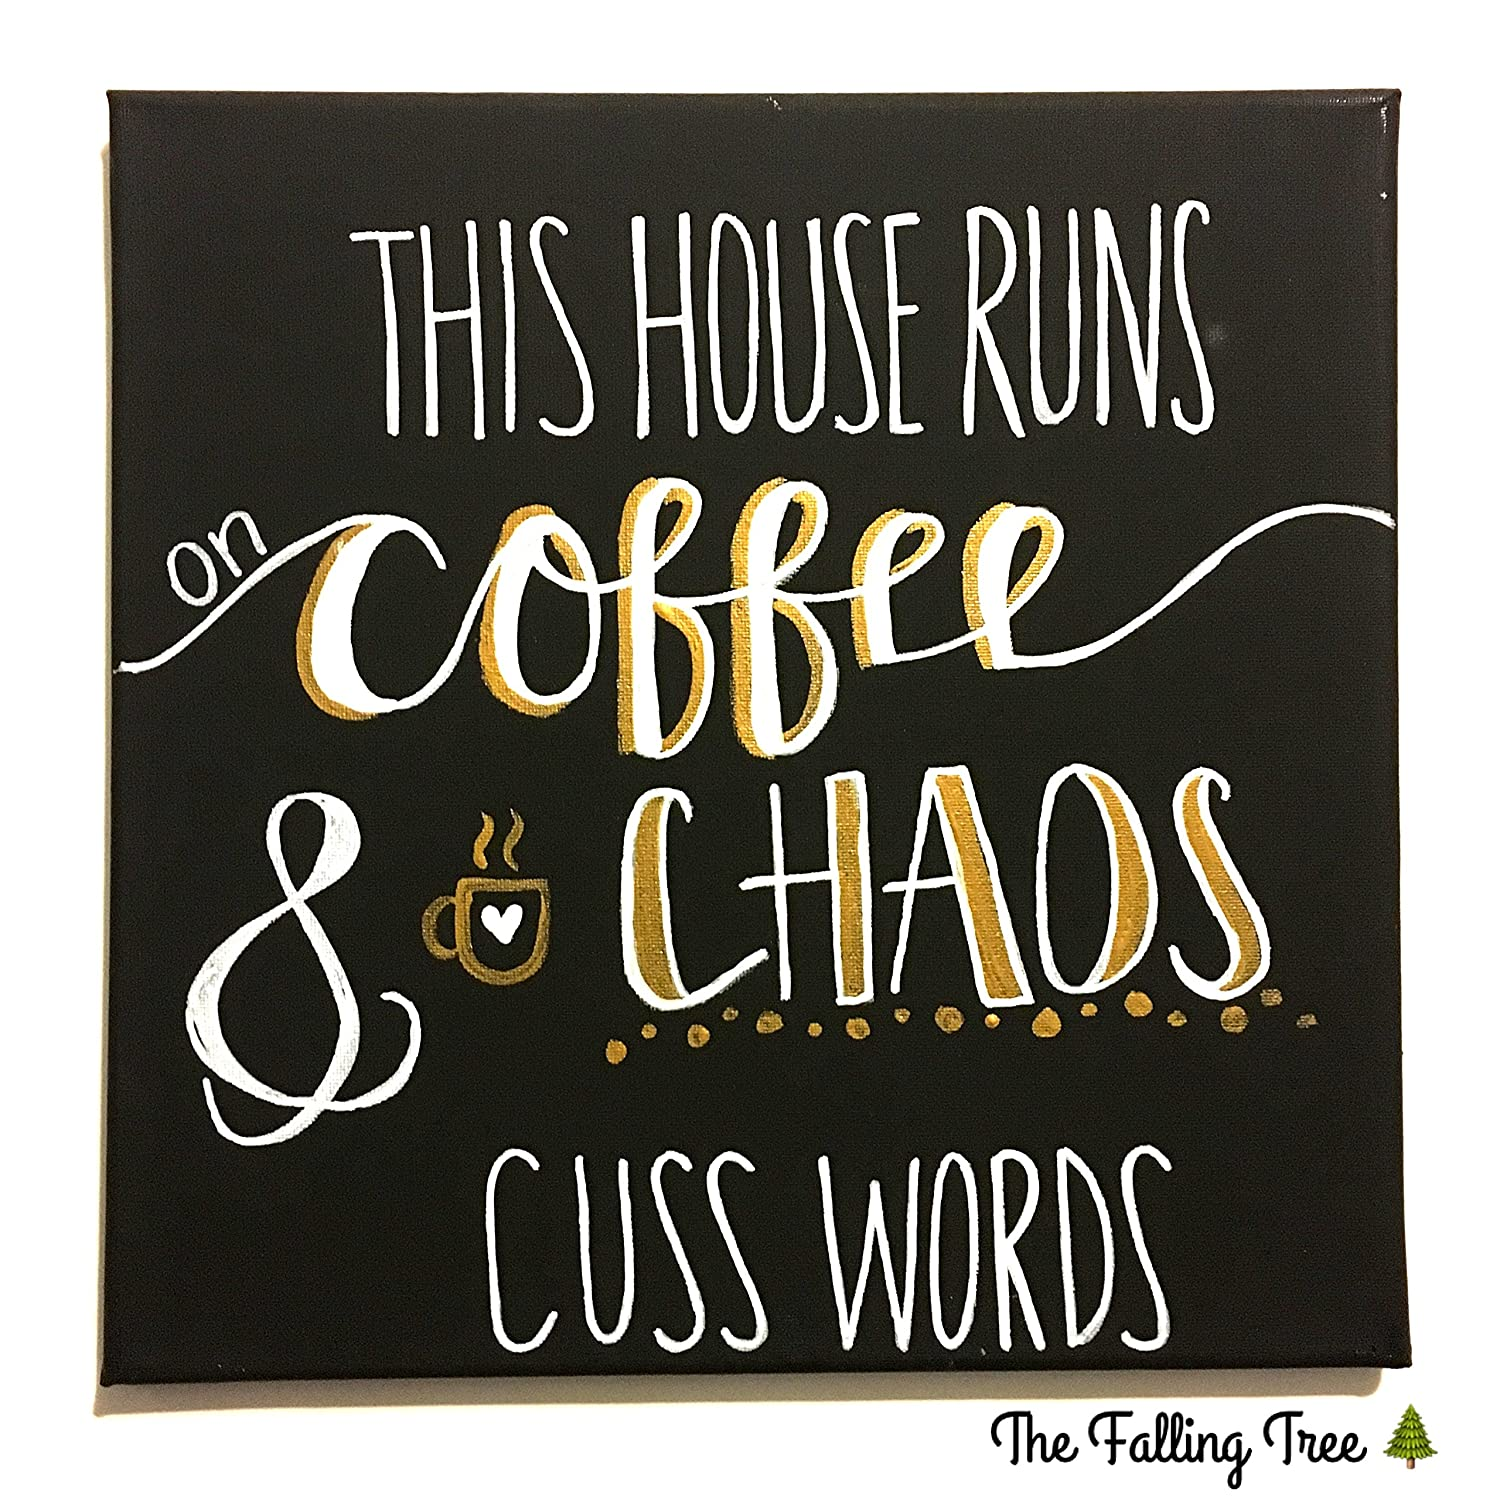 Funny, Sarcastic Family Coffee Canvas Painting For HomeThis House Runs on Coffee Chaos, and Cuss Words